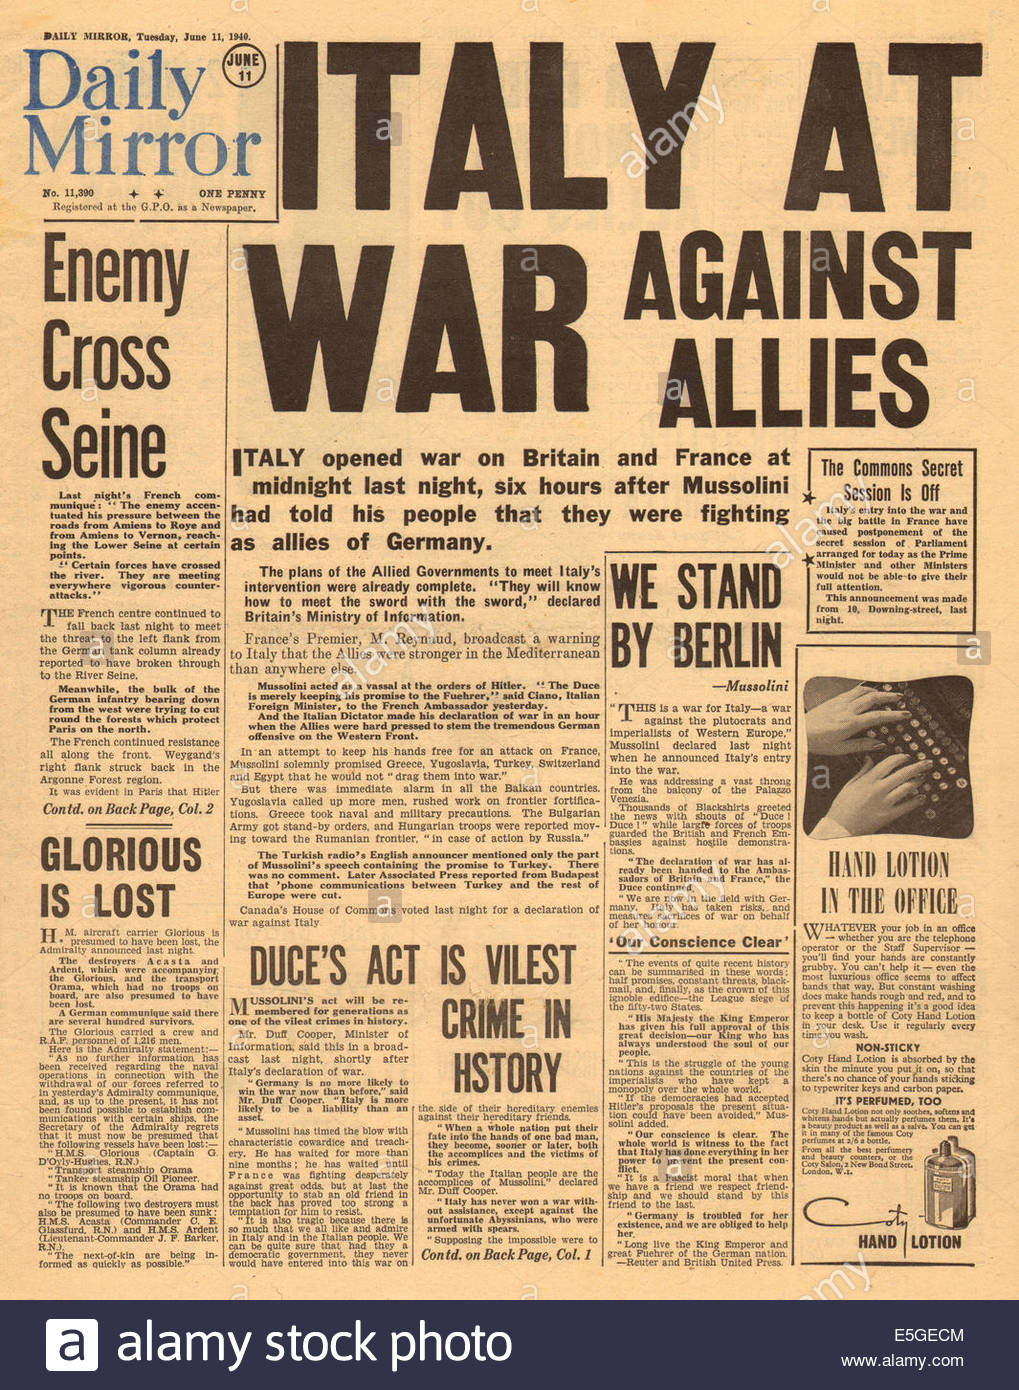 1940 daily mirror front page reporting italy declares war on